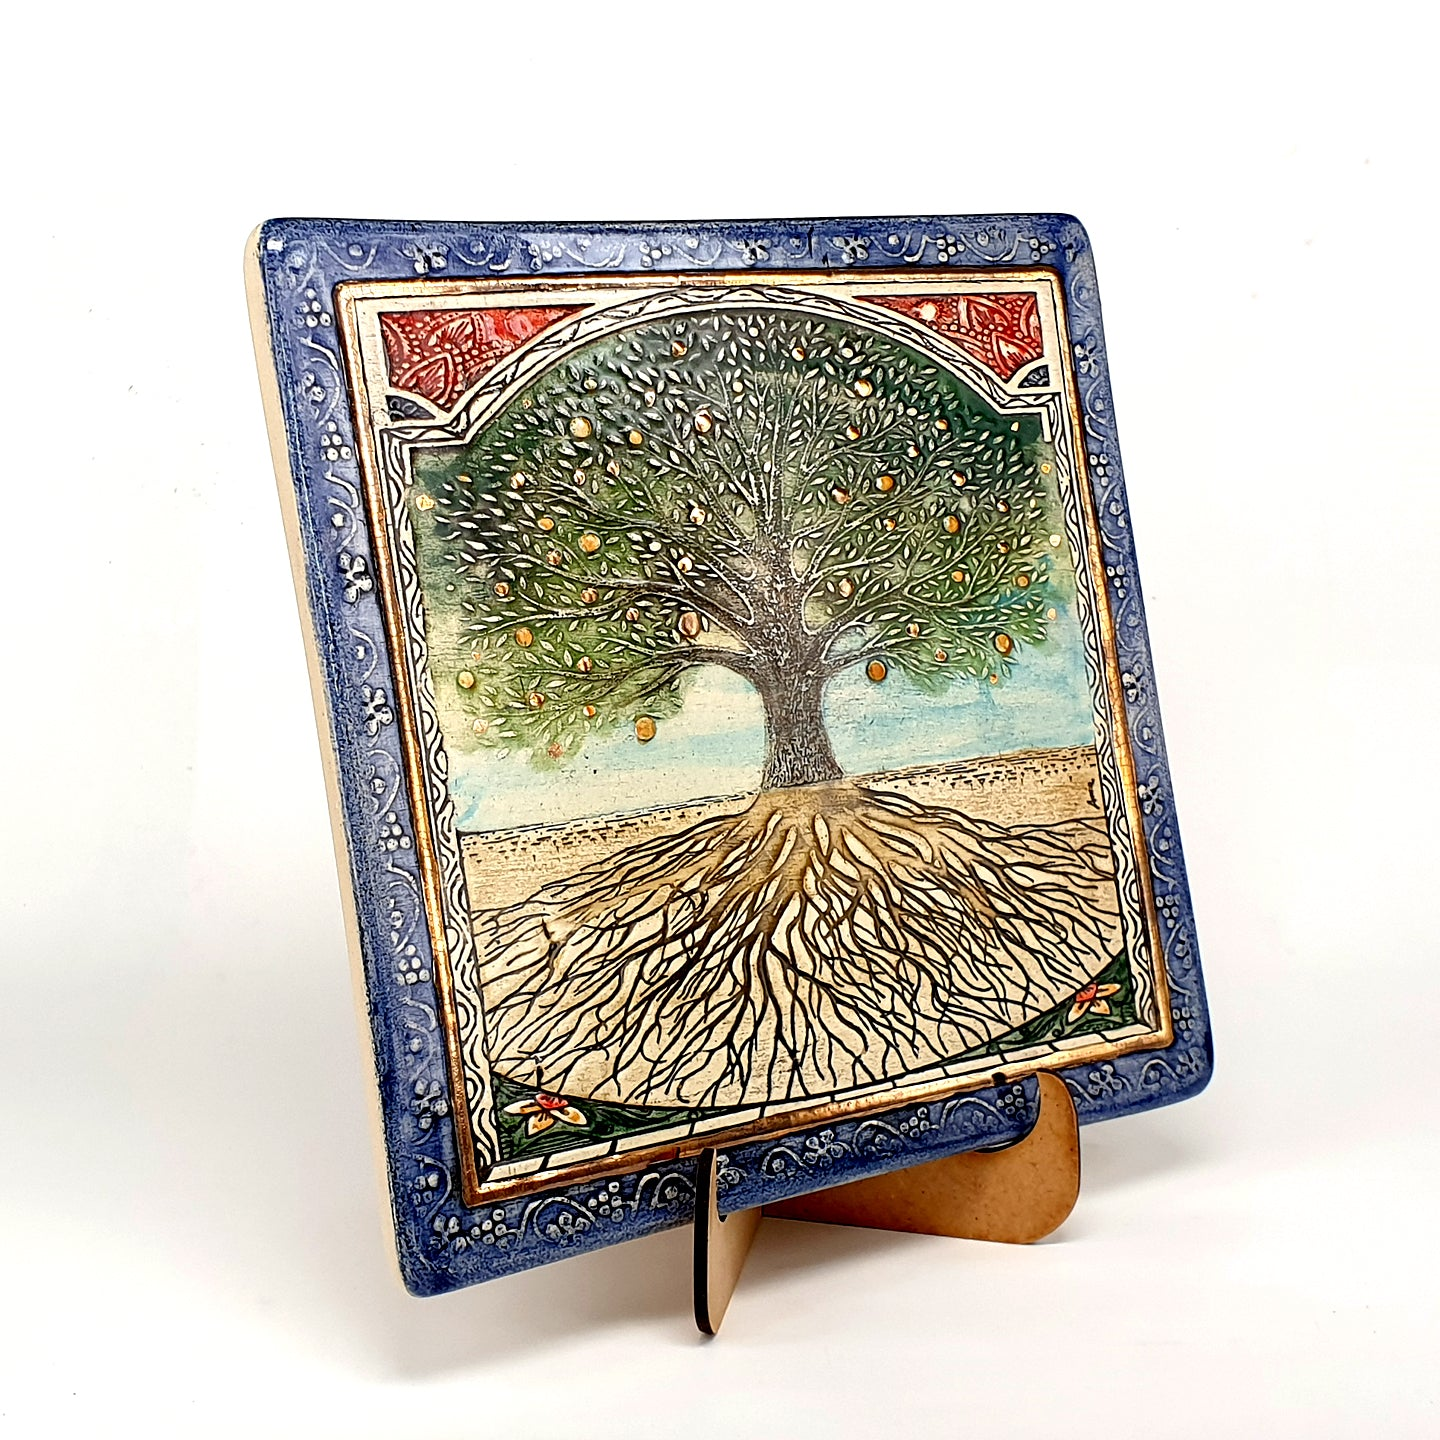 Tree Of Life Handmade Ceramic Wall Plaque Decorated With 24 Karat Gold